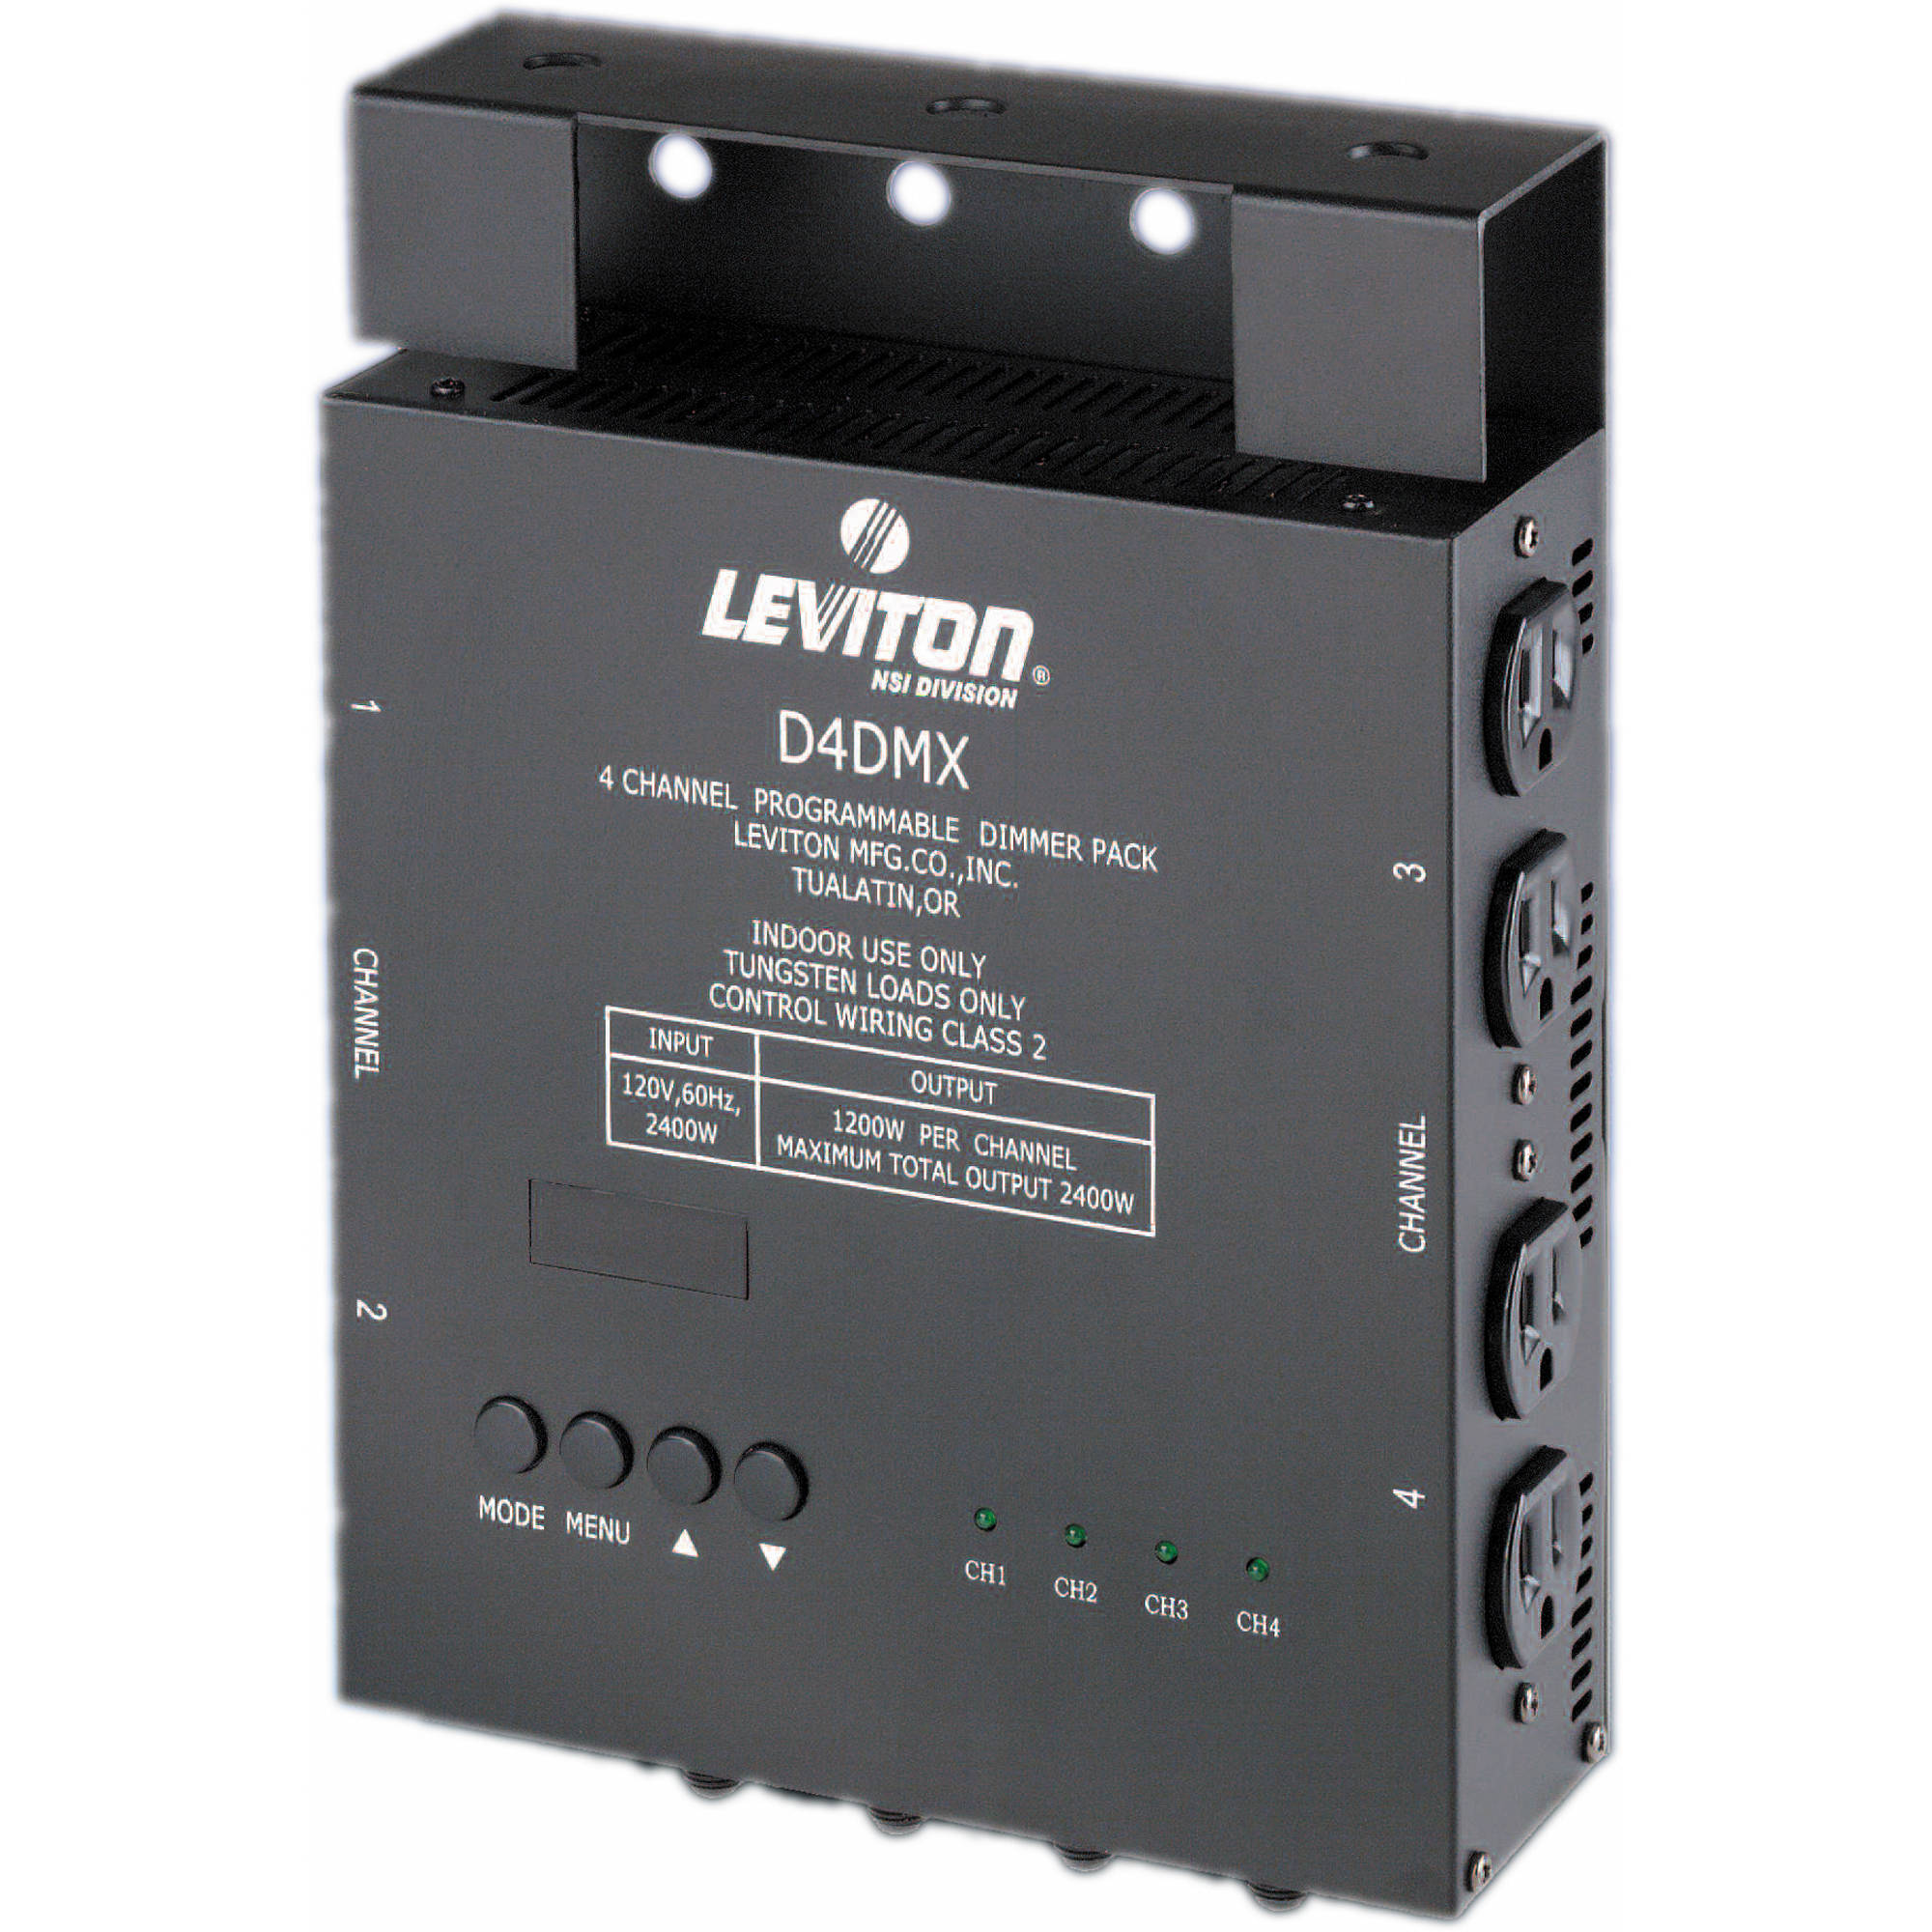 hight resolution of nsi leviton d4 dmx 4 channel programmable dimmer pack 3 pin xlr